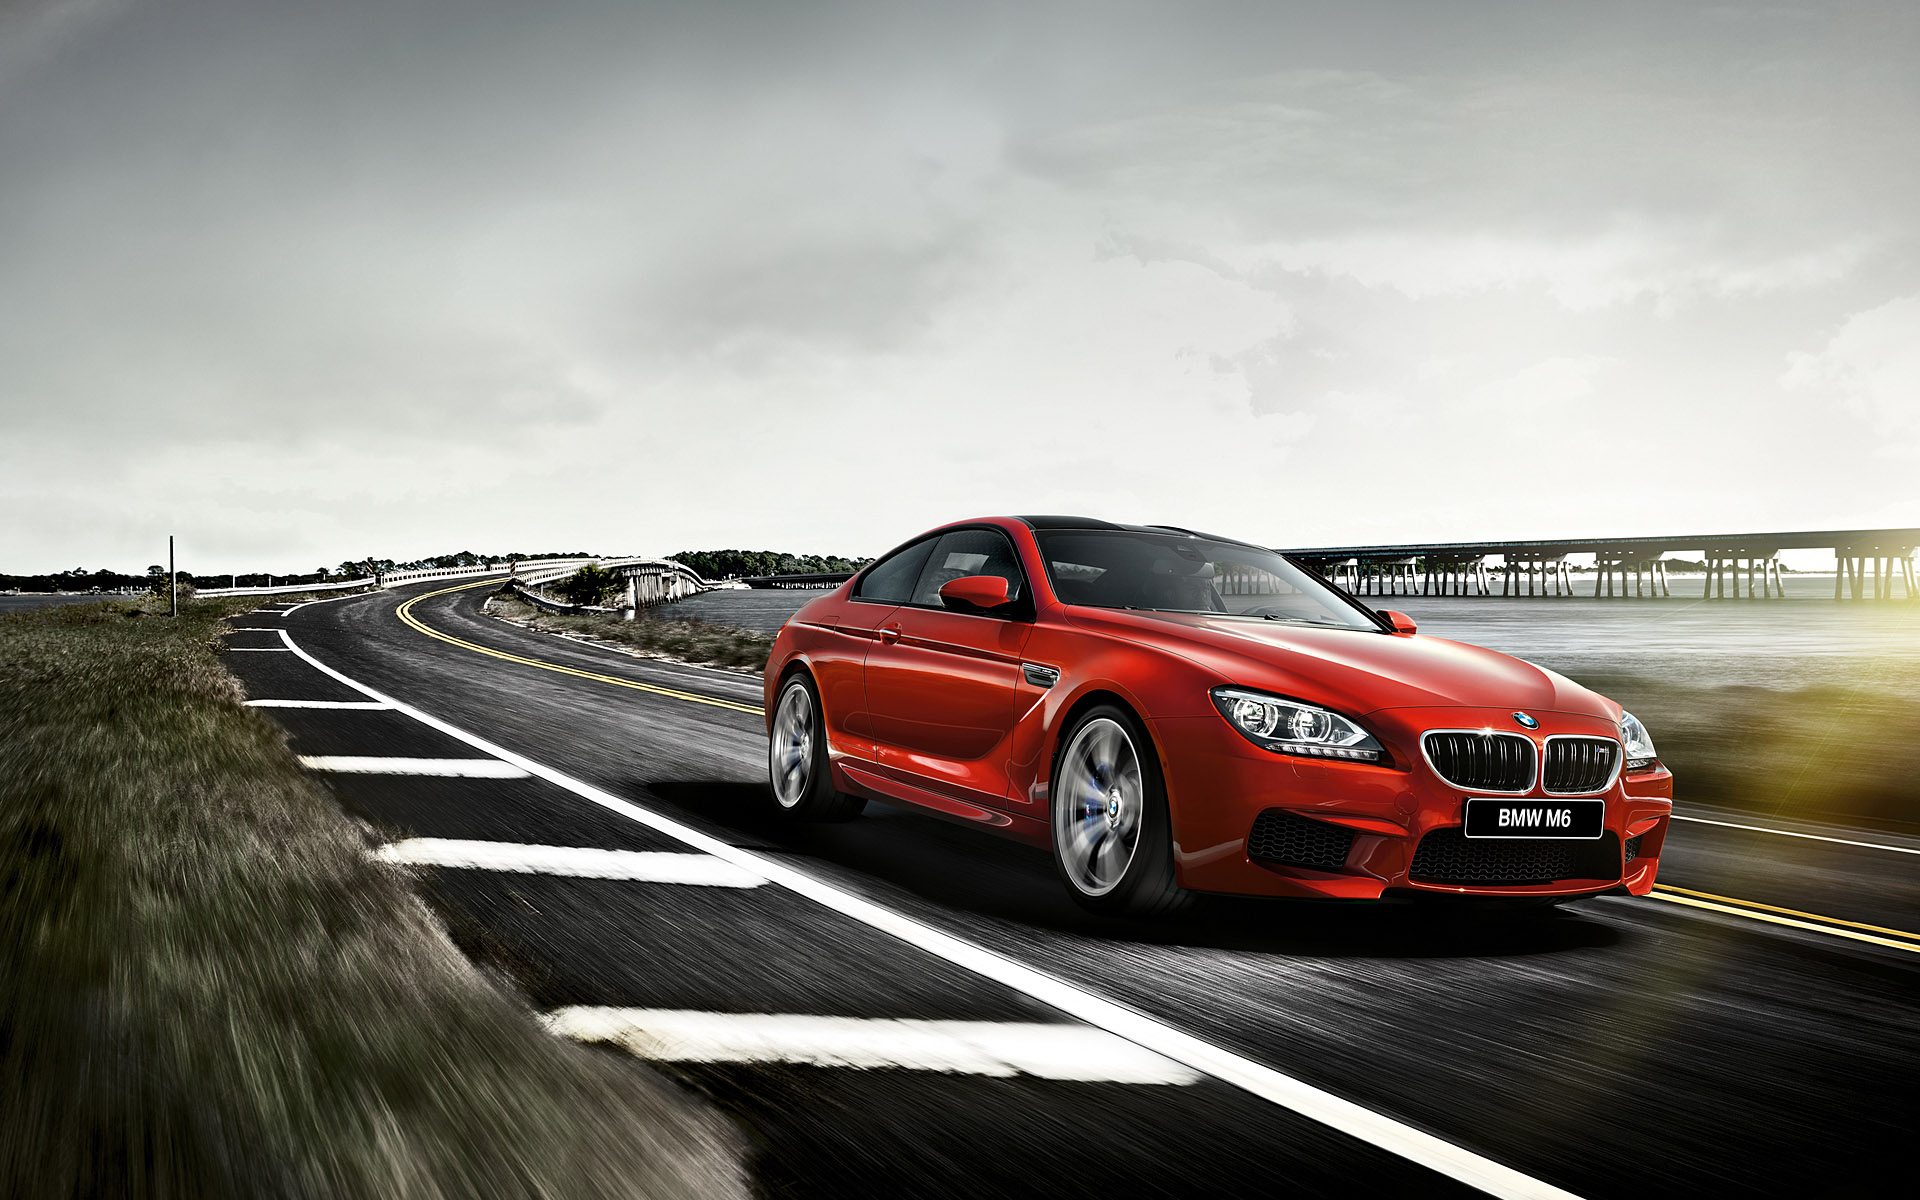 2015 bmw m6 f13 coupe wallpaper hd car wallpapers. Black Bedroom Furniture Sets. Home Design Ideas